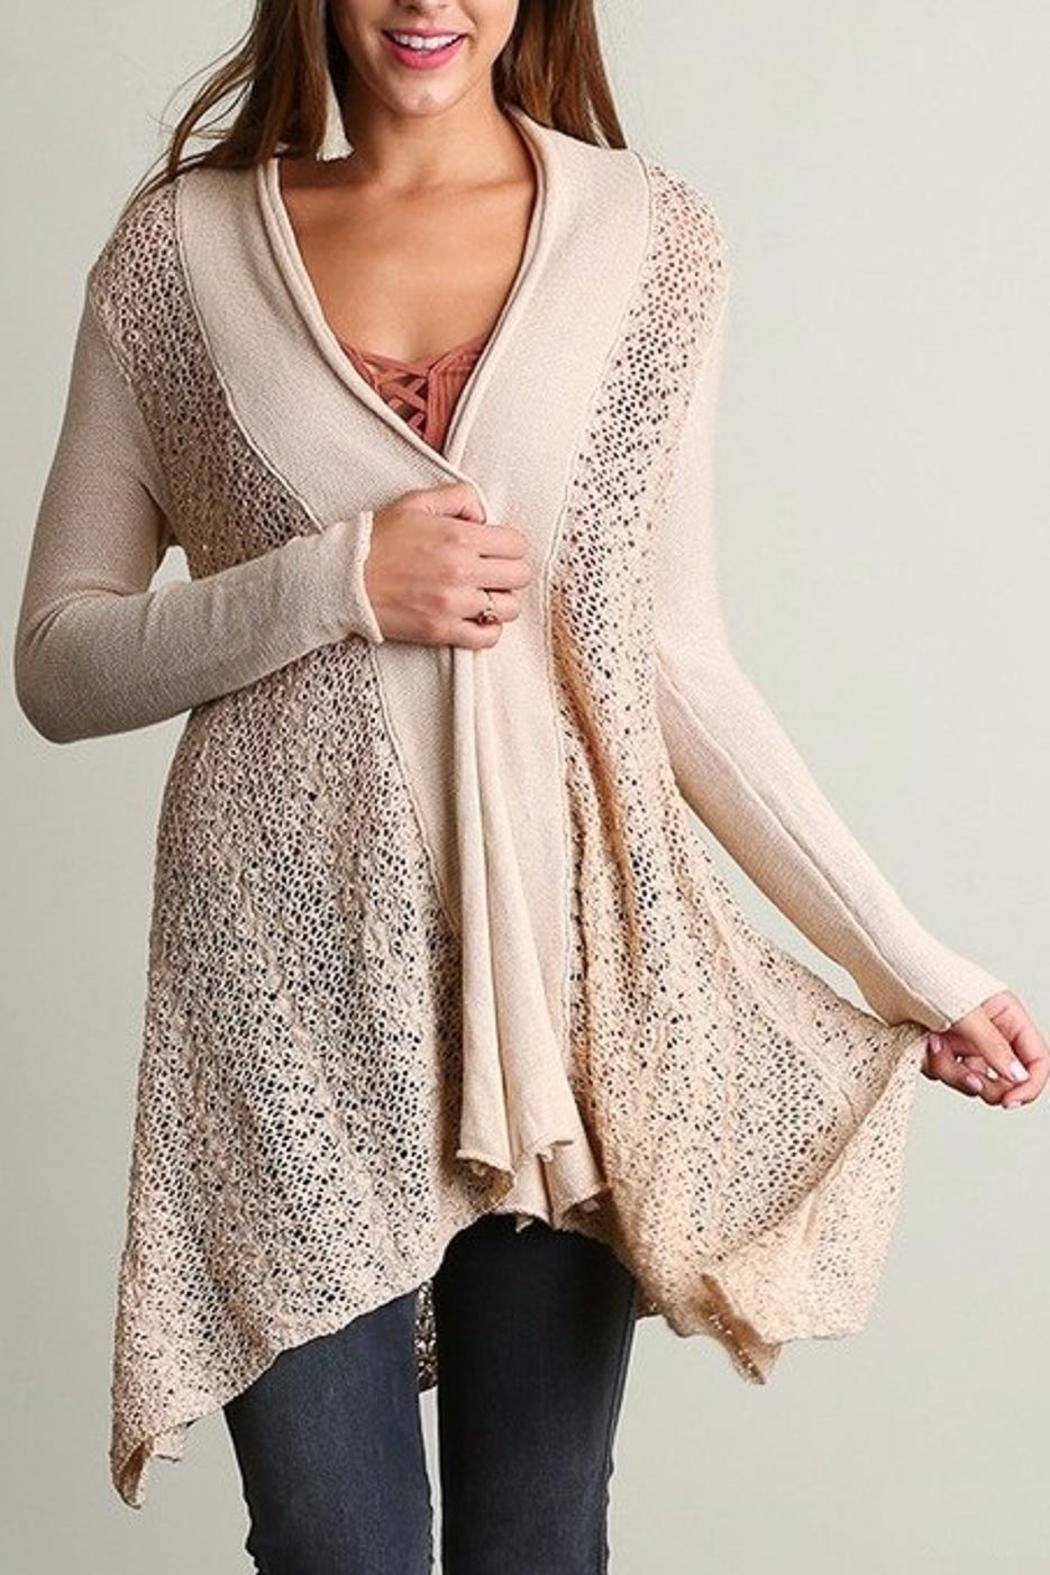 People Outfitter Sweater Knit Cardigan - Main Image